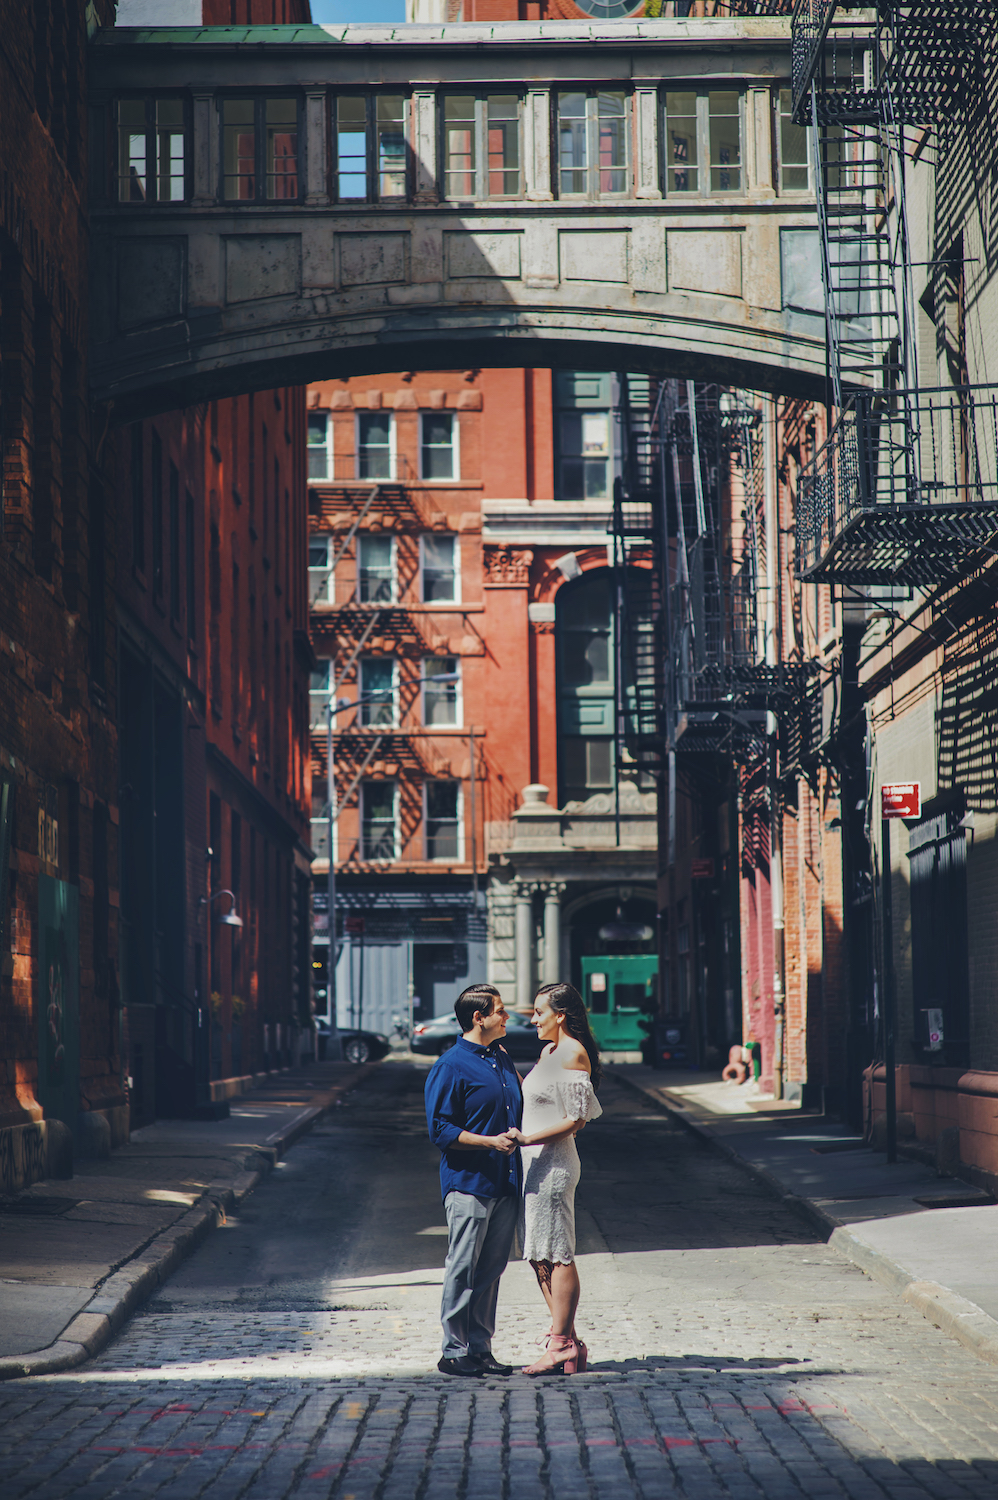 jesse&clarissa-embracing-in-old-city-street-nyc-engagement-photos